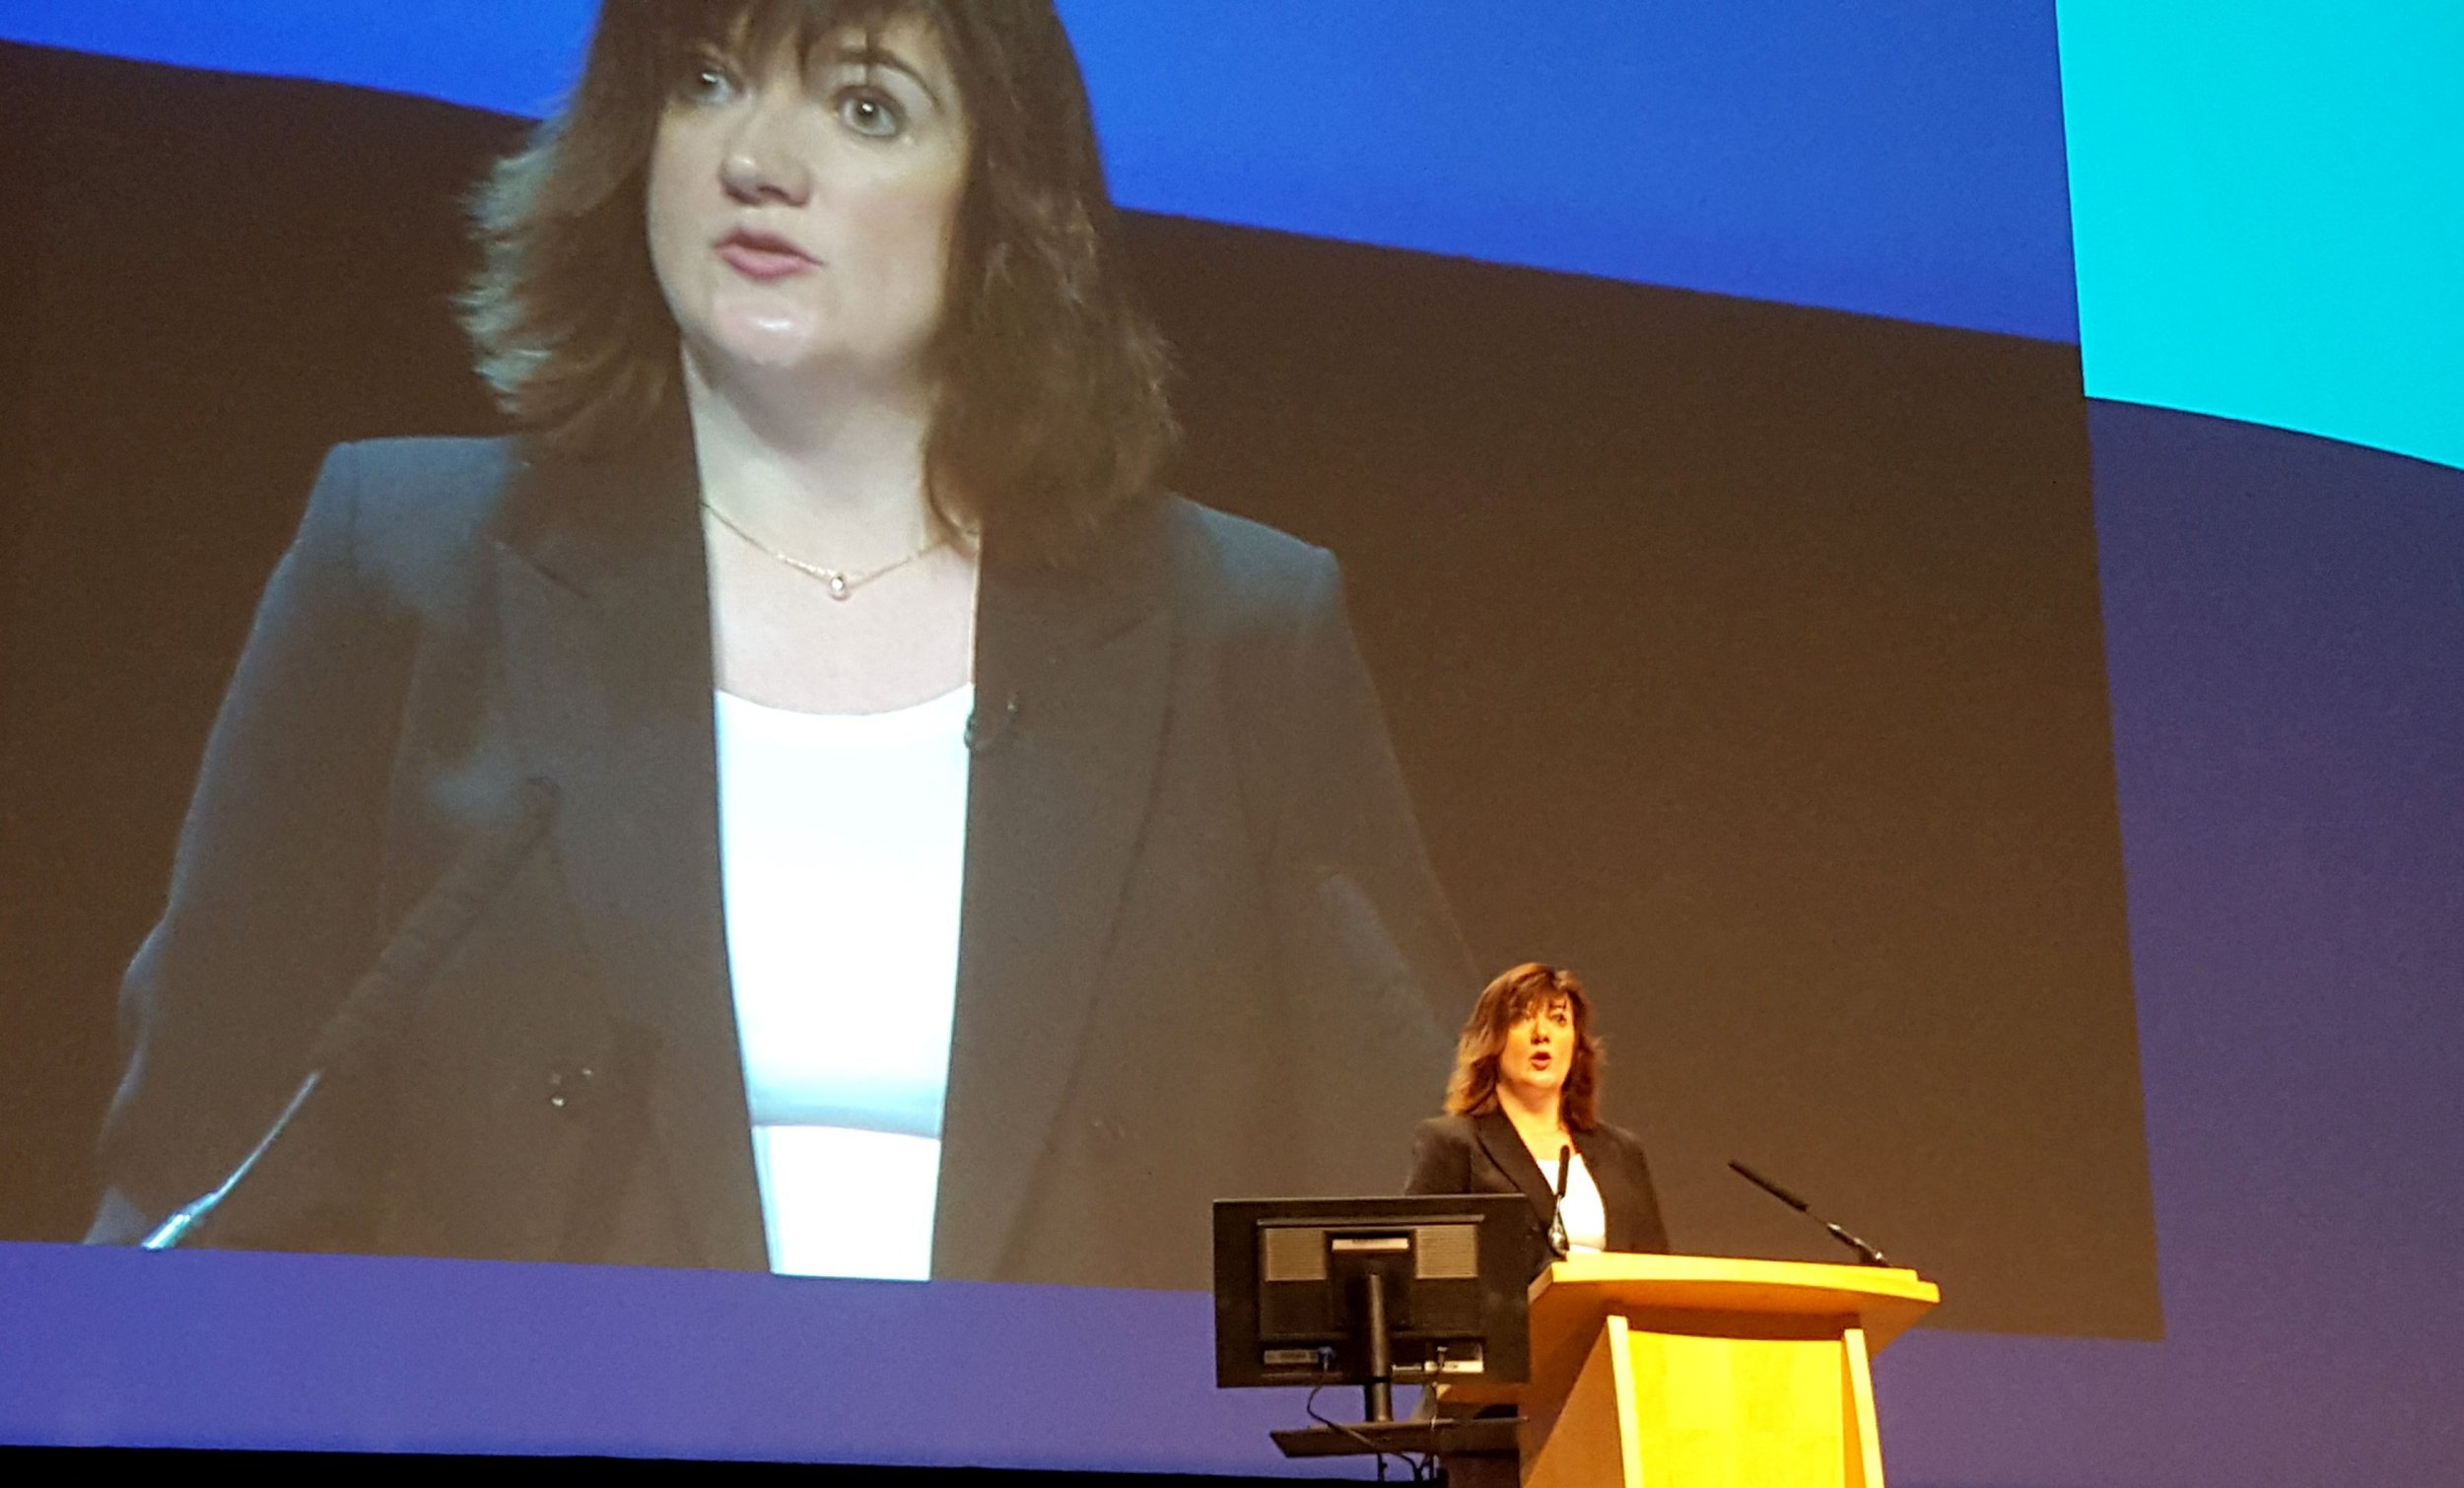 Education Secretary Nicky Morgan addresses the National Association of Head Teachers (NAHT) annual conference in Birmingham. PRESS ASSOCIATION Photo. Picture date: Saturday April 30, 2016. See PA story EDUCATION Sats. Photo credit should read: Harriet Line/PA Wire